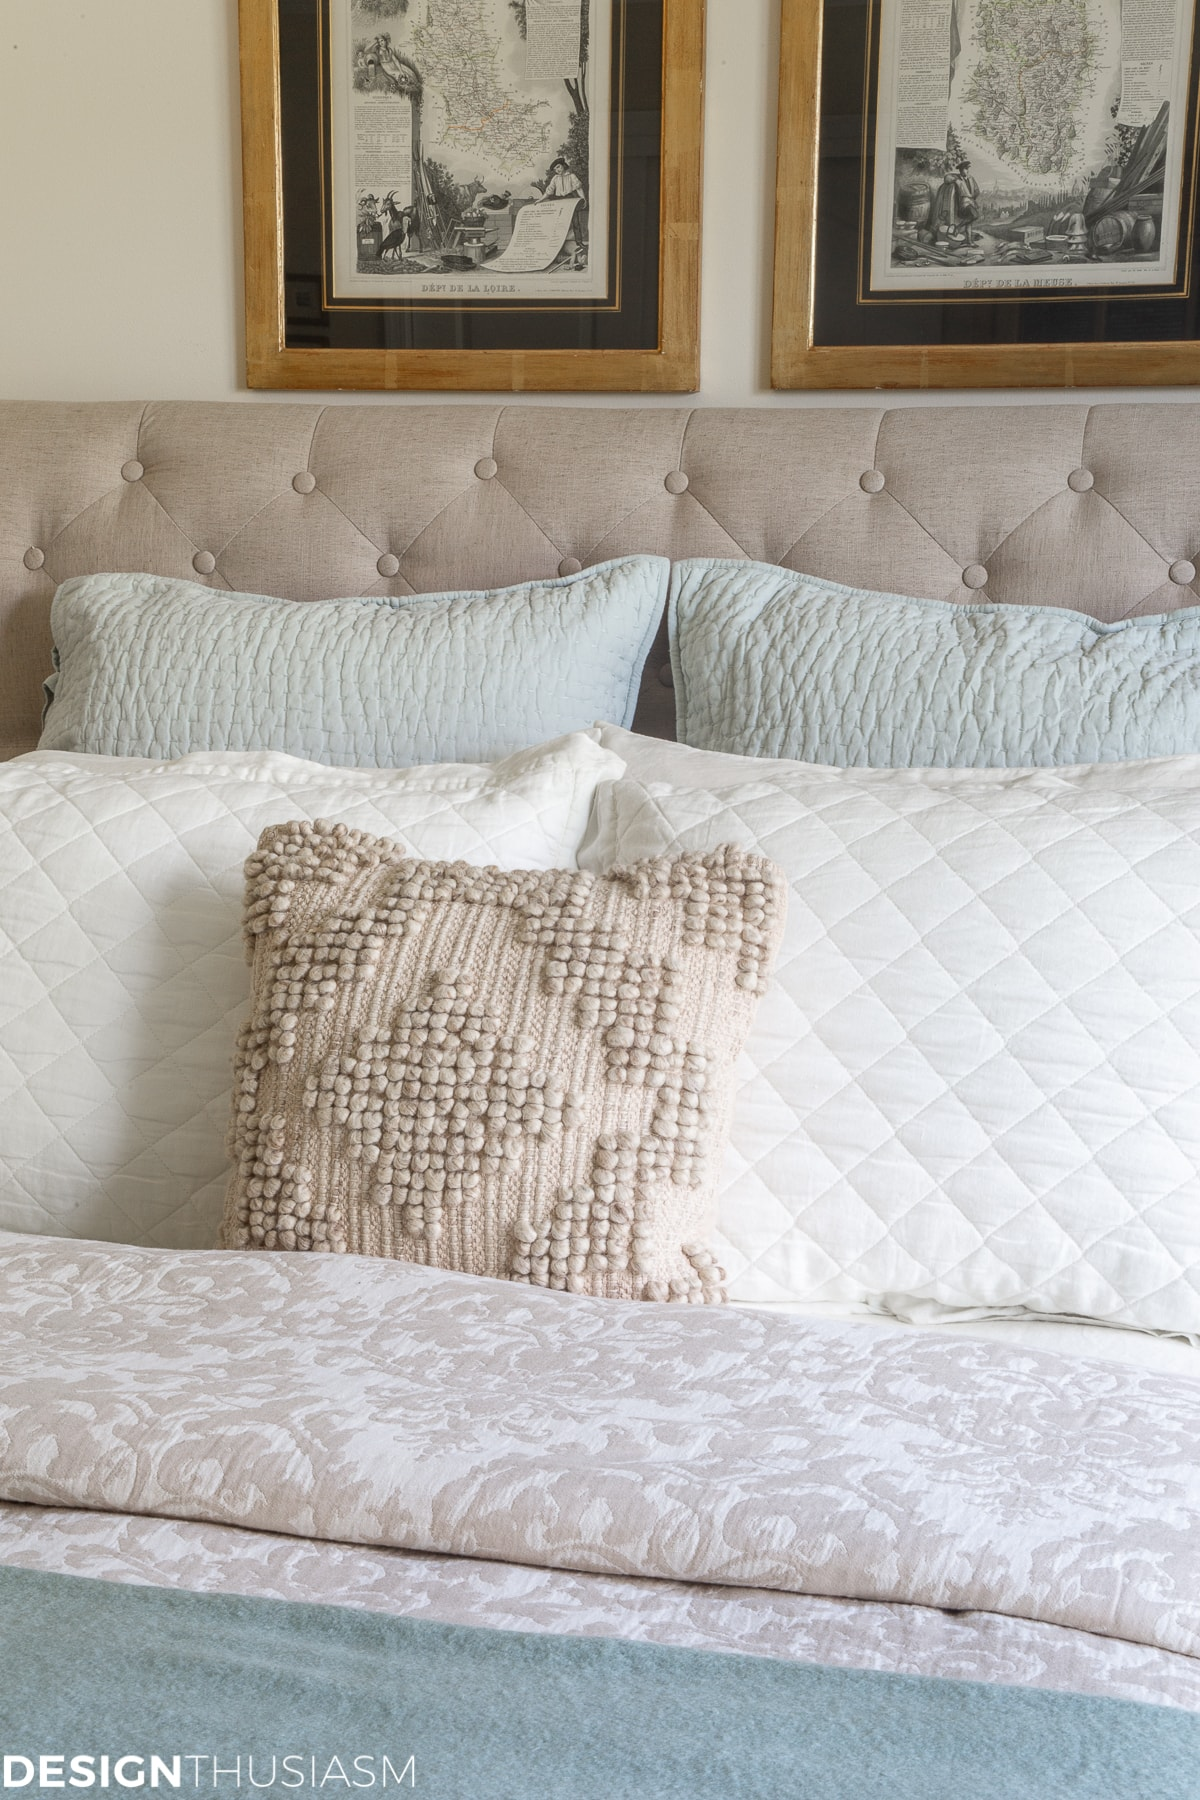 neutral bed linen and pillows